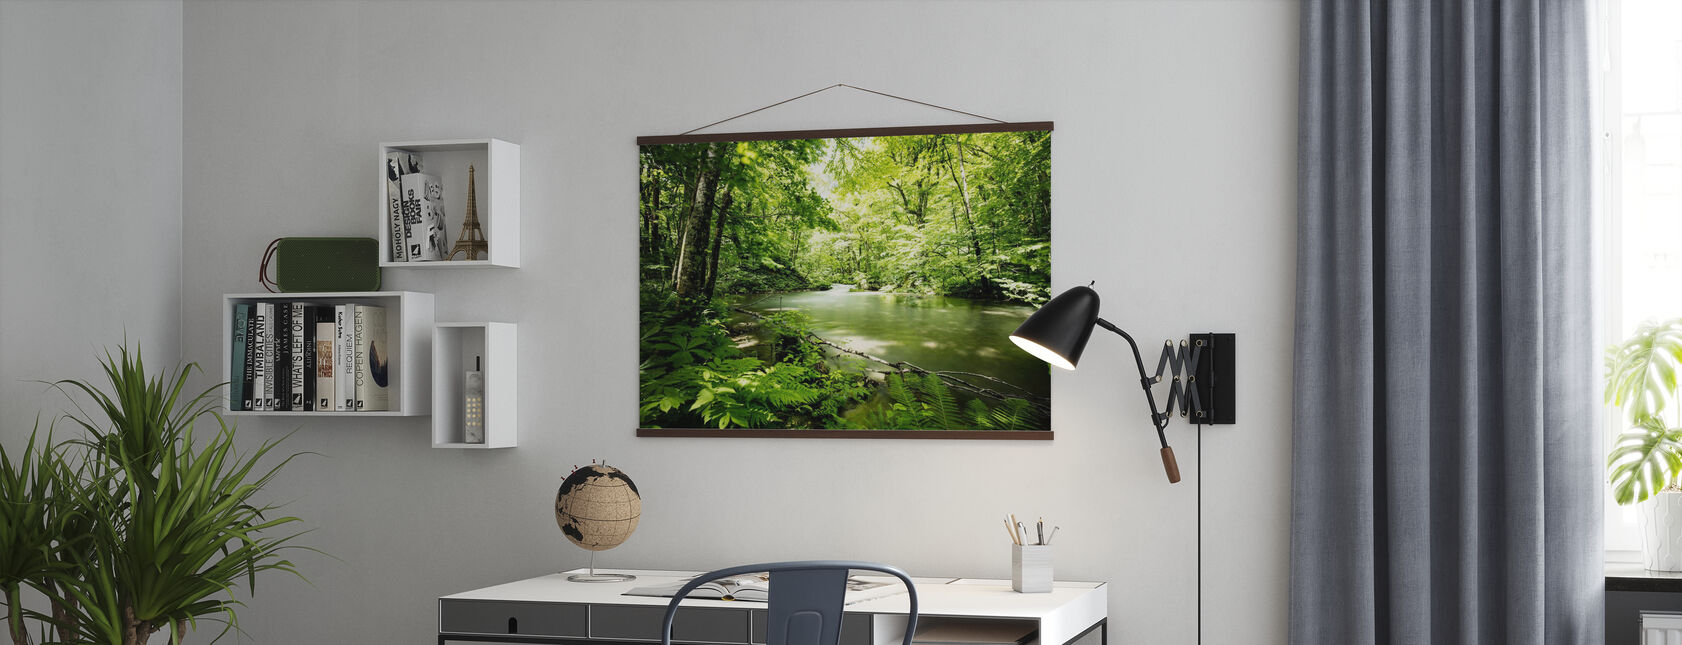 Deep into the Forest - Poster - Office